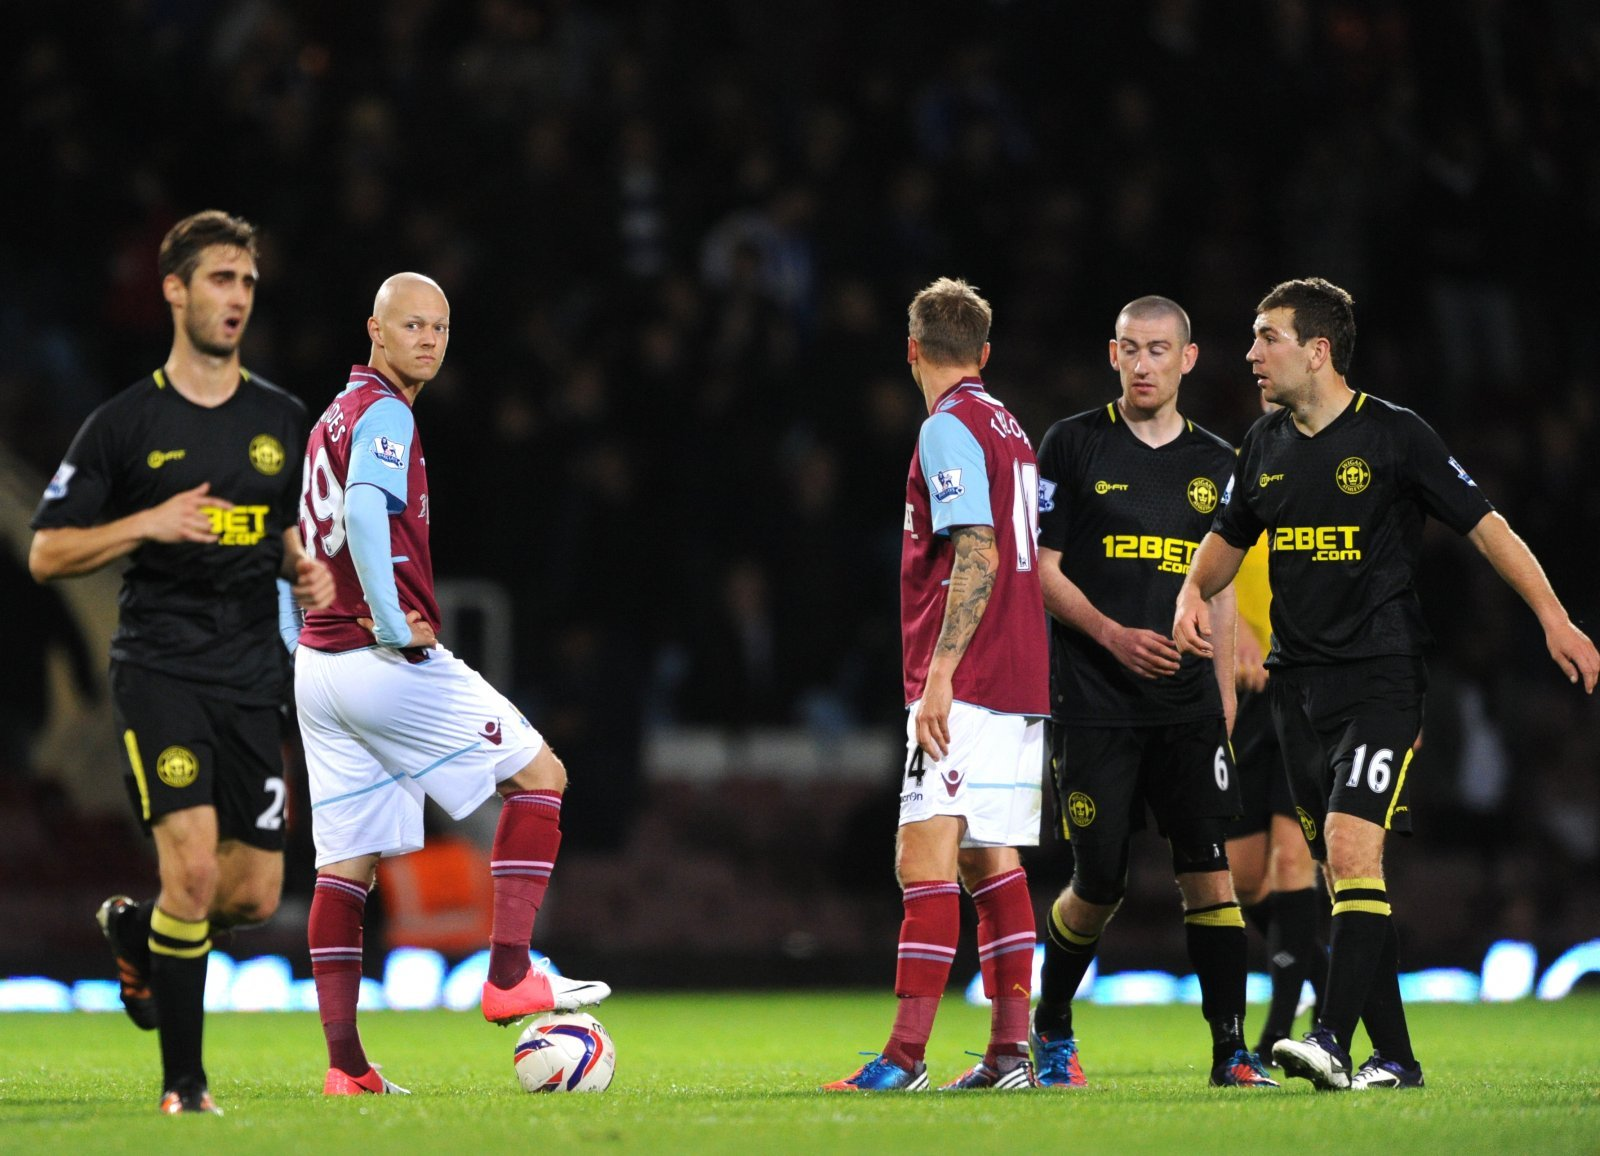 West Ham United: Many fans remember Dylan Tombides' debut for the club